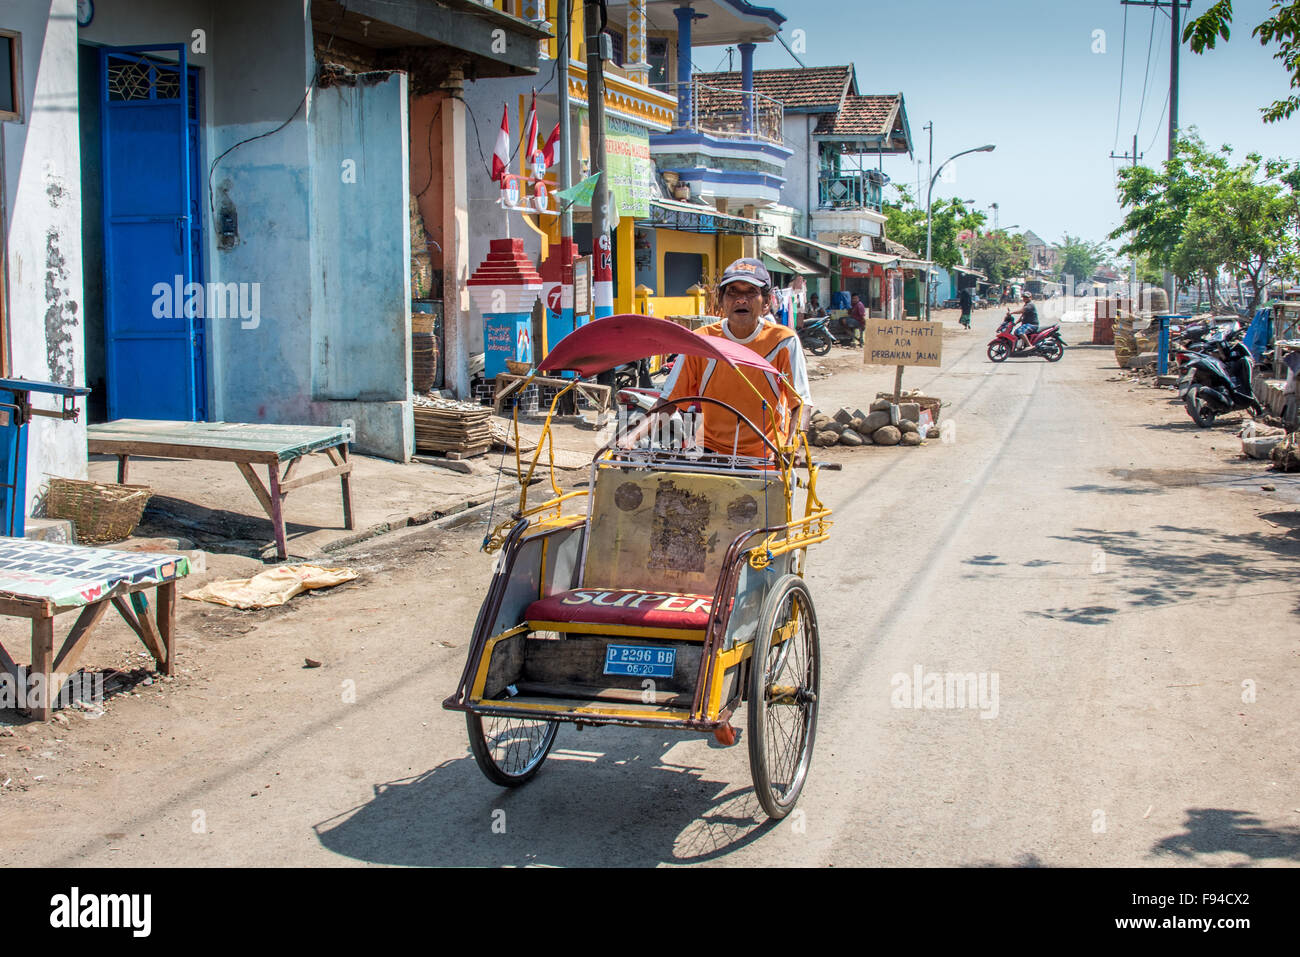 indonesian driver stock photos indonesian driver stock images alamy. Black Bedroom Furniture Sets. Home Design Ideas